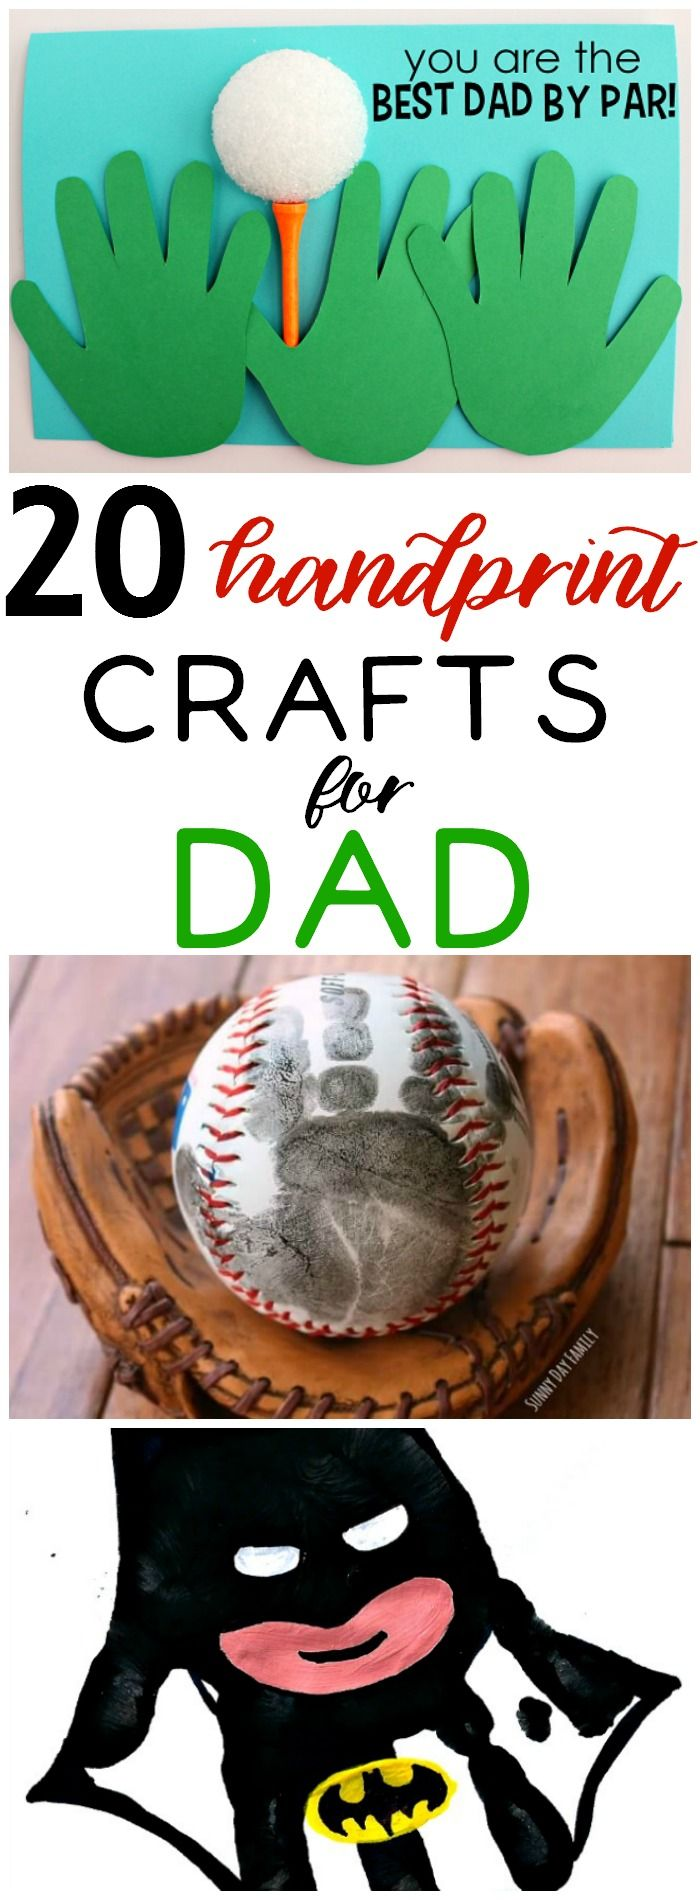 Handprint crafts for Father's Day make great gift.  These personalized ideas will make any dad's day.  Kid friendly crafts and DIY ideas to make Father's Day special this year.